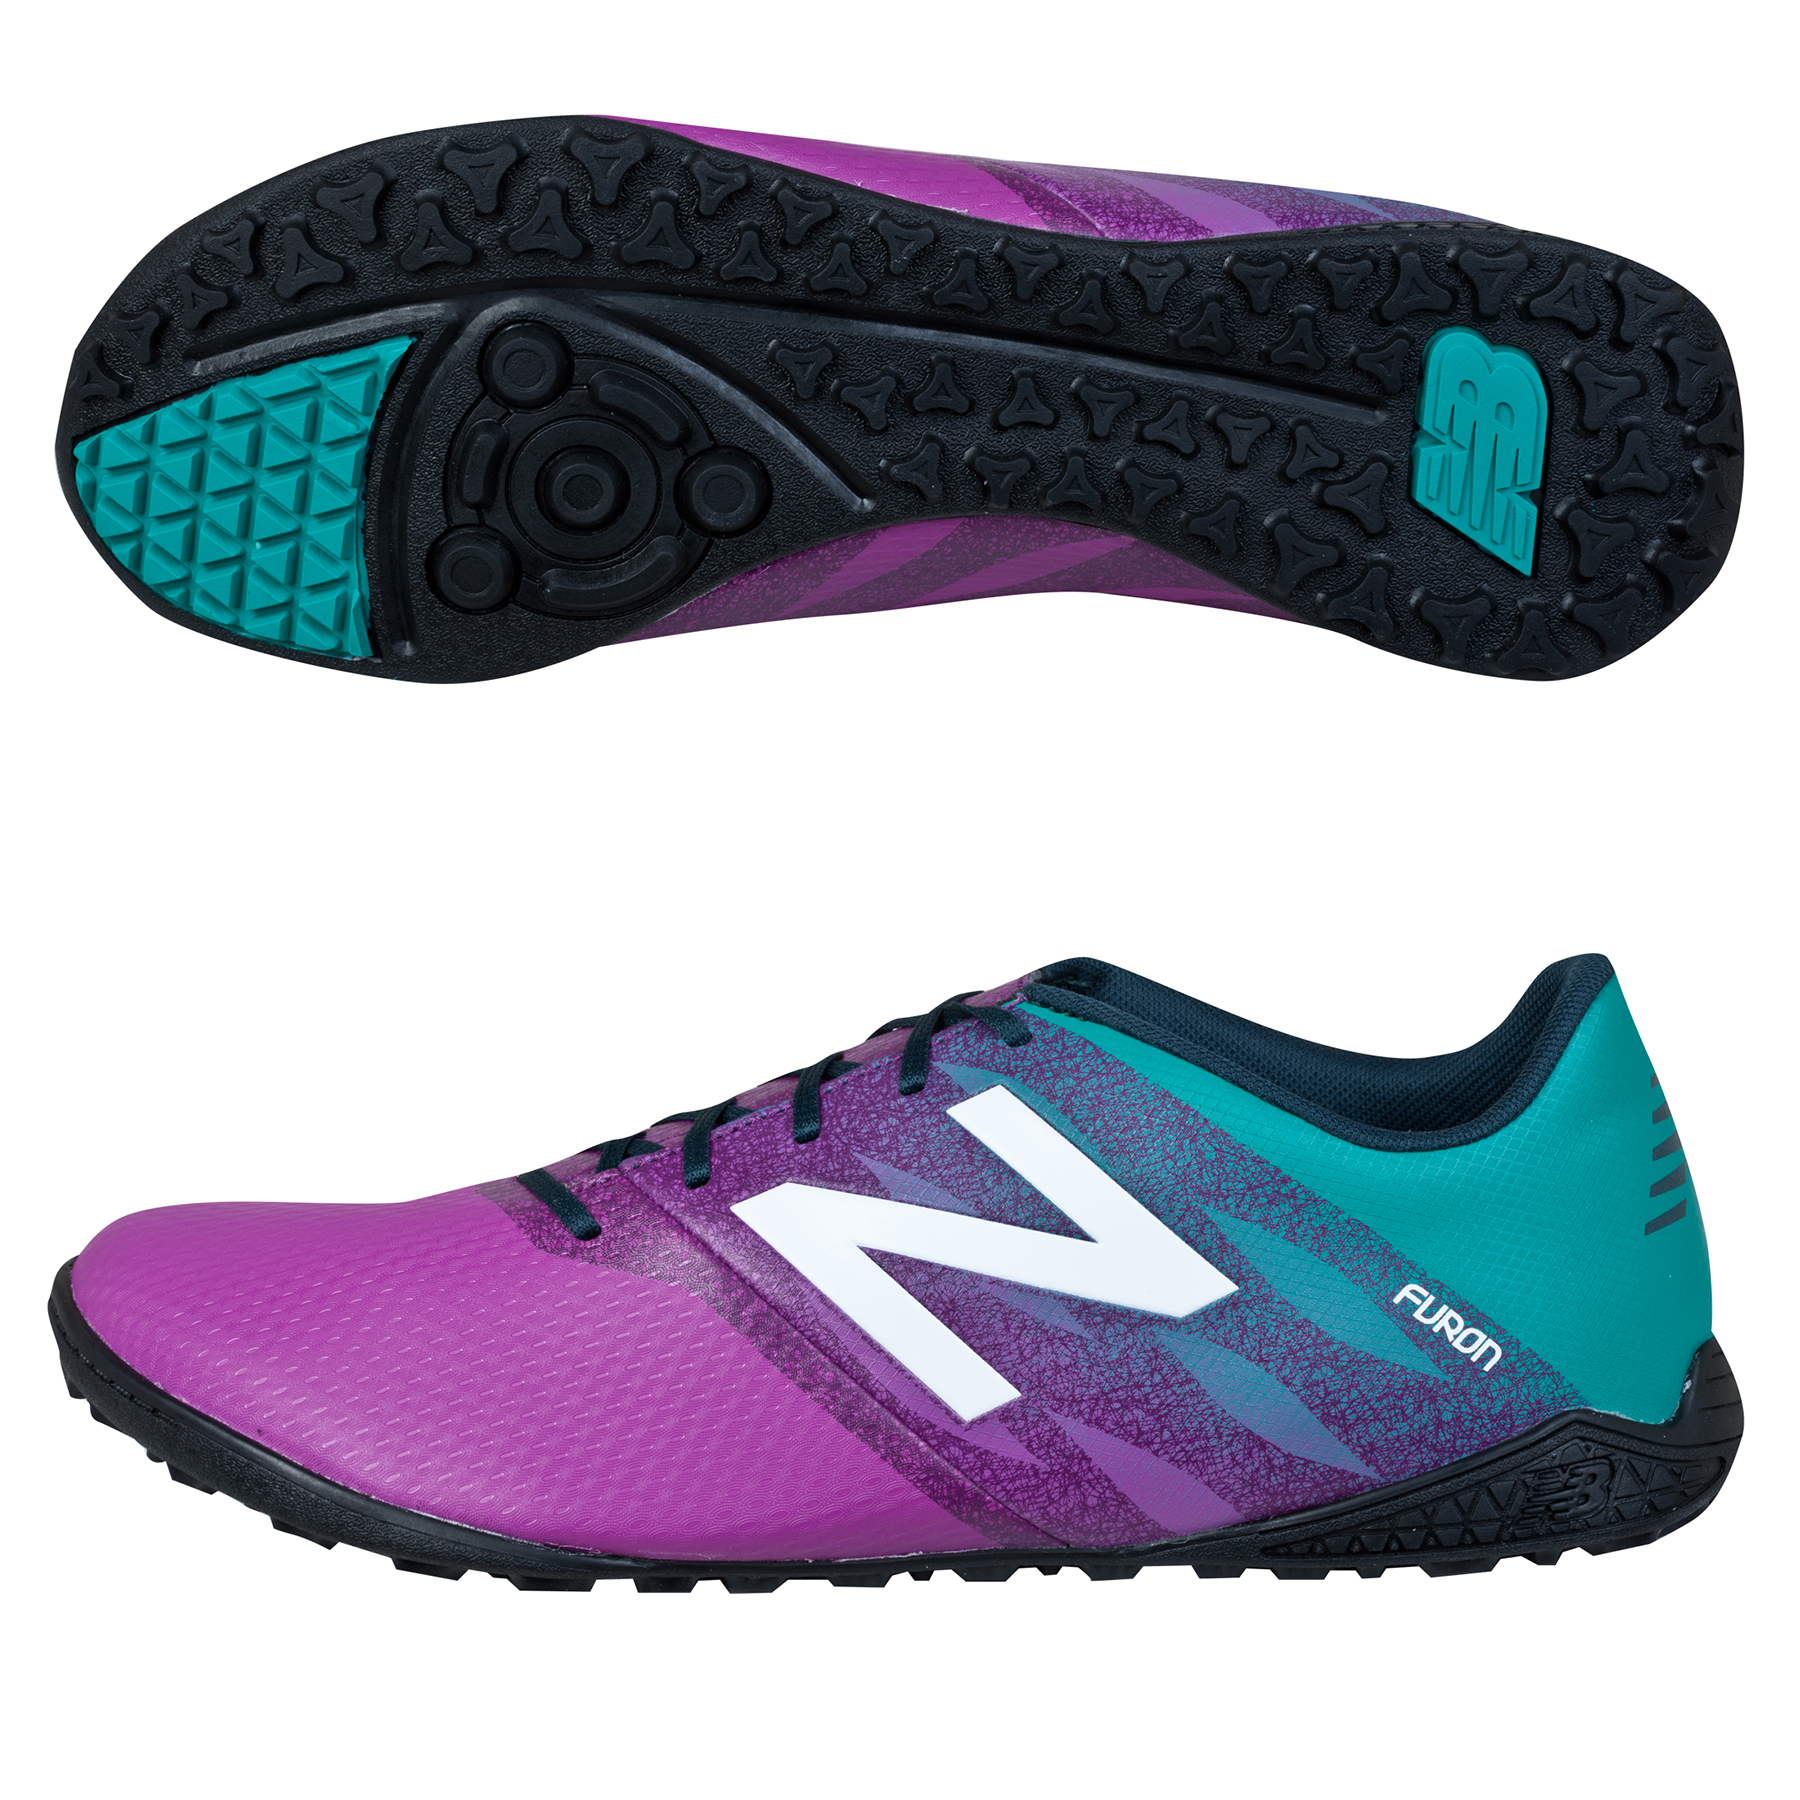 New Balance Furon Dispatch Astroturf Trainers  Kids Purple